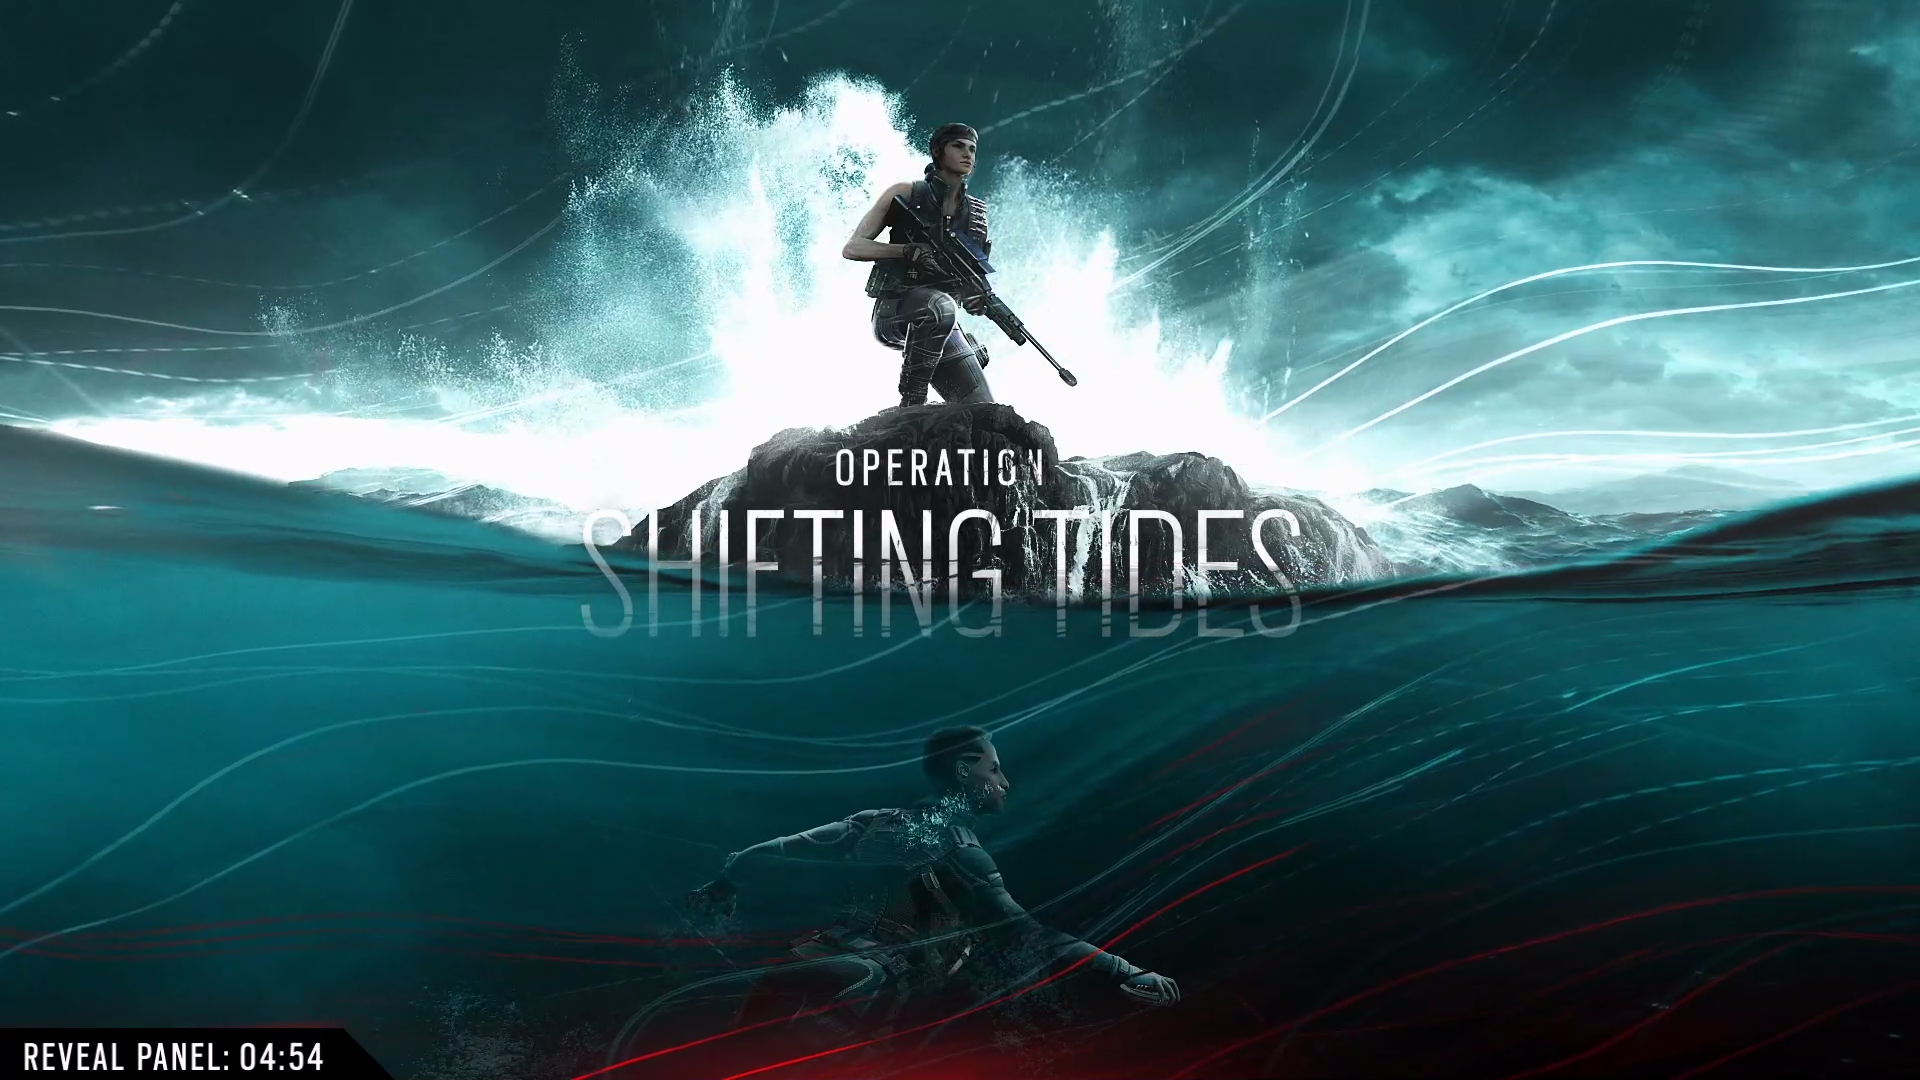 The Operation Shifting Tide's promotional images